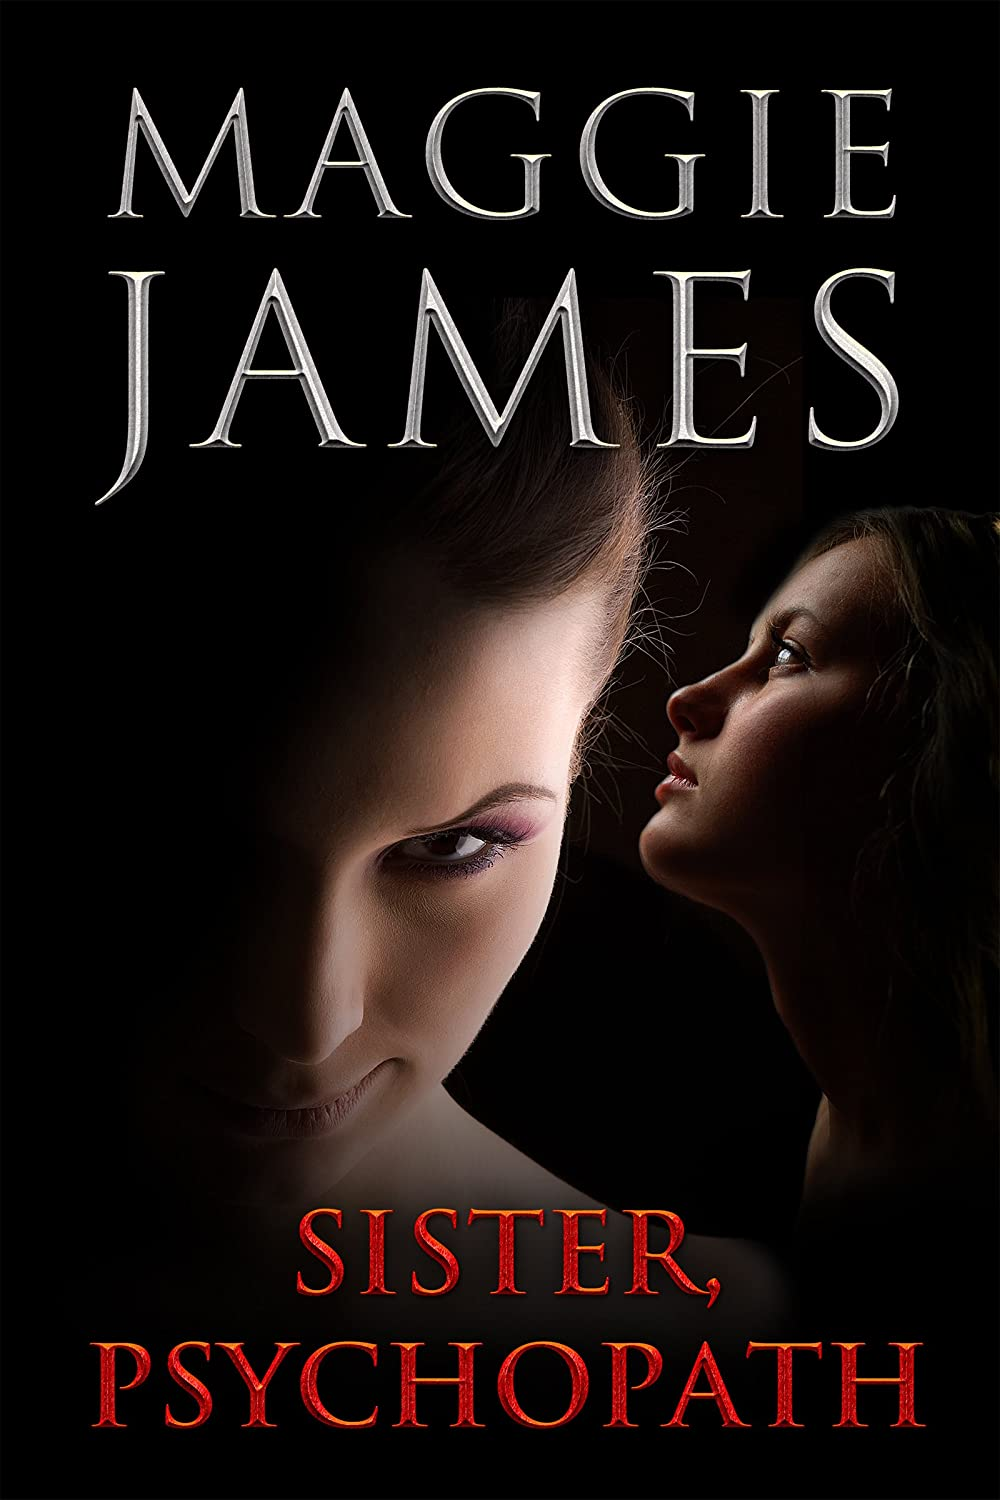 Sister, Psychopath by Maggie James